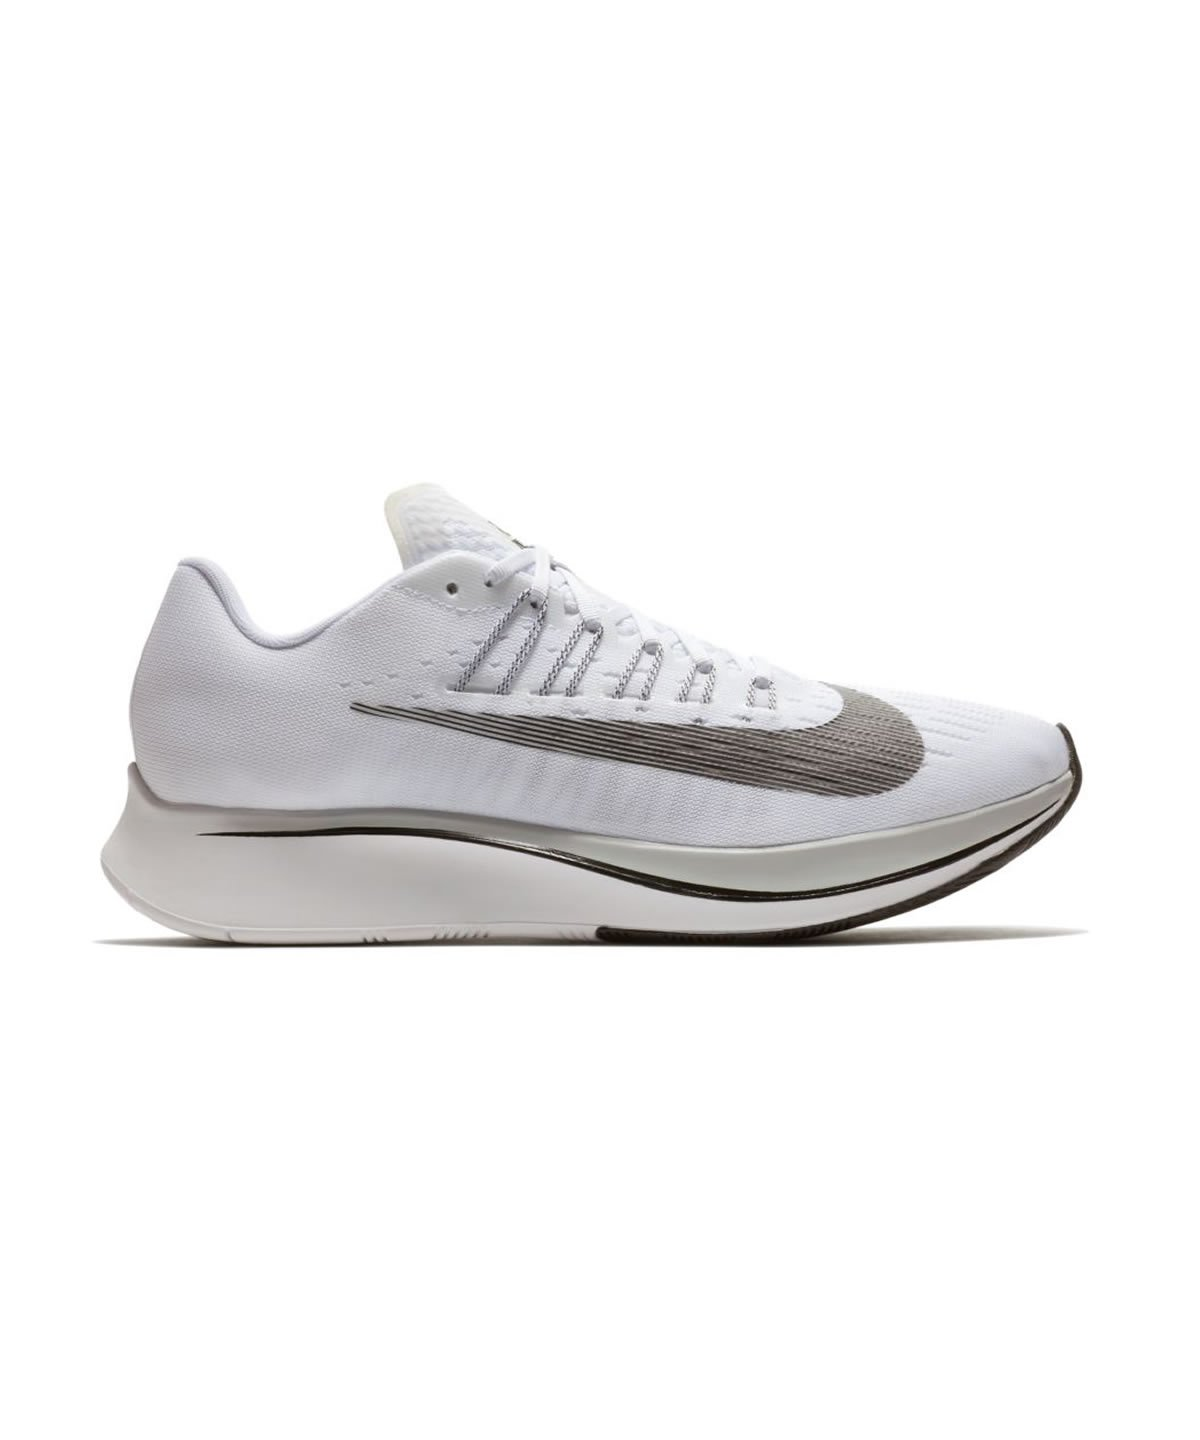 buy popular ca559 4c91a Galleon - Nike Zoom Fly Mens 880848-101 Size 7